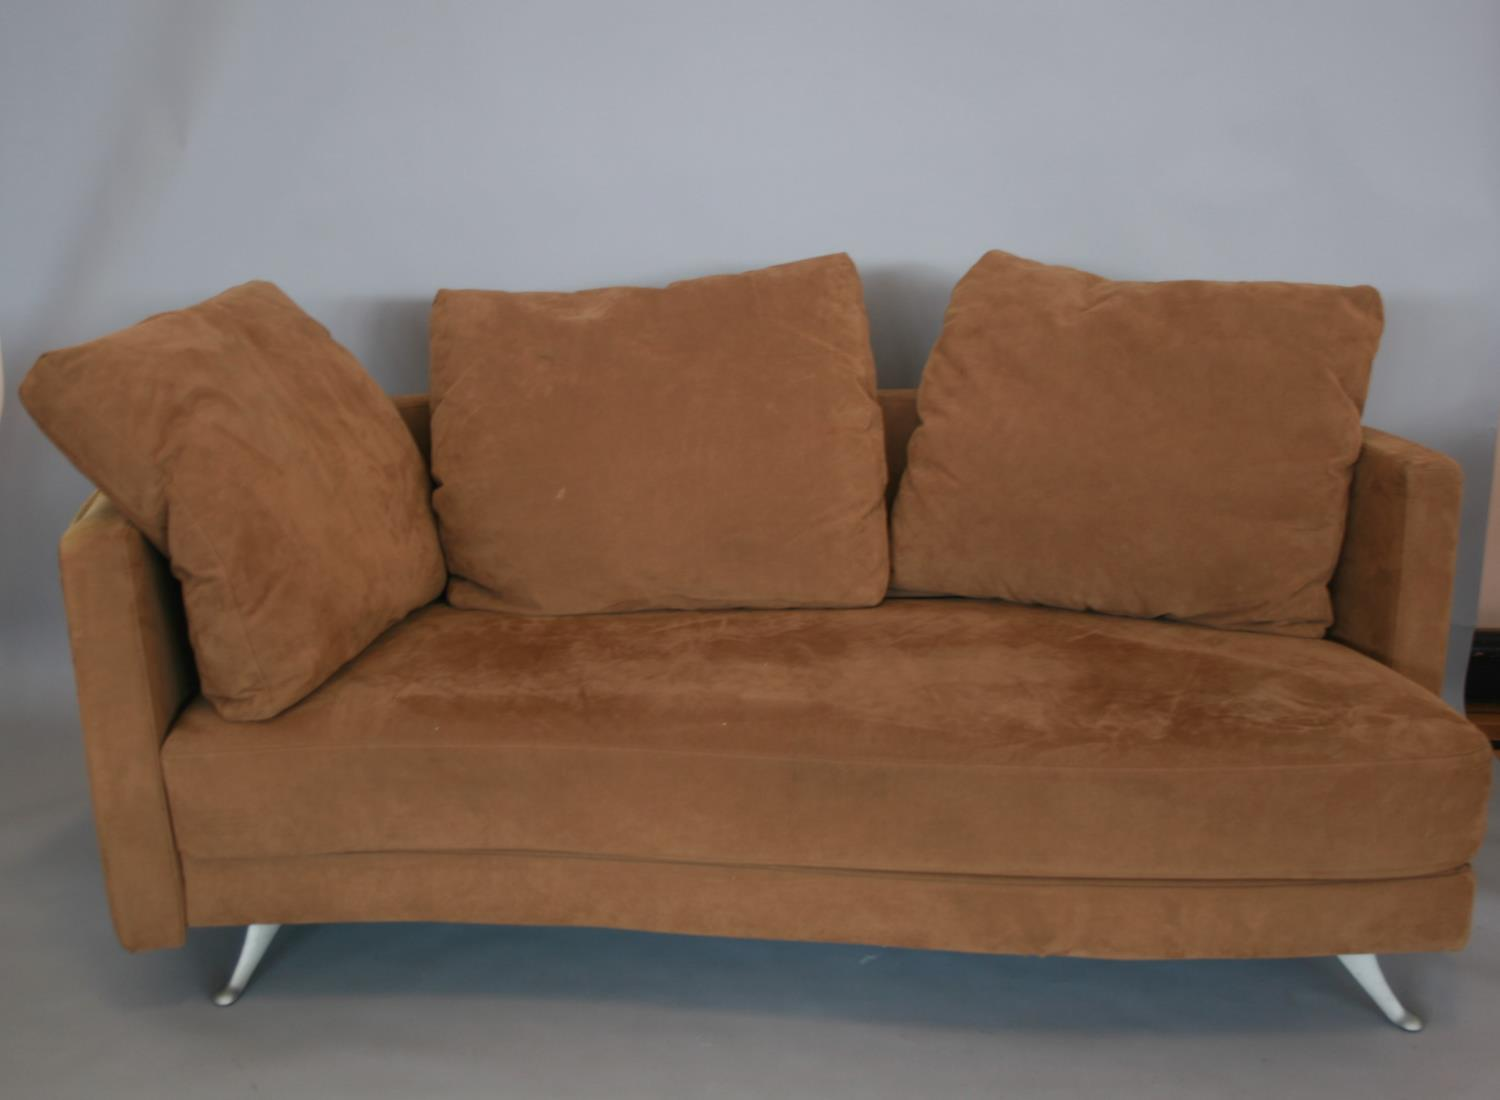 Rolf Benz suede covered sofa with some fading 190 W x 70 H x 80 D